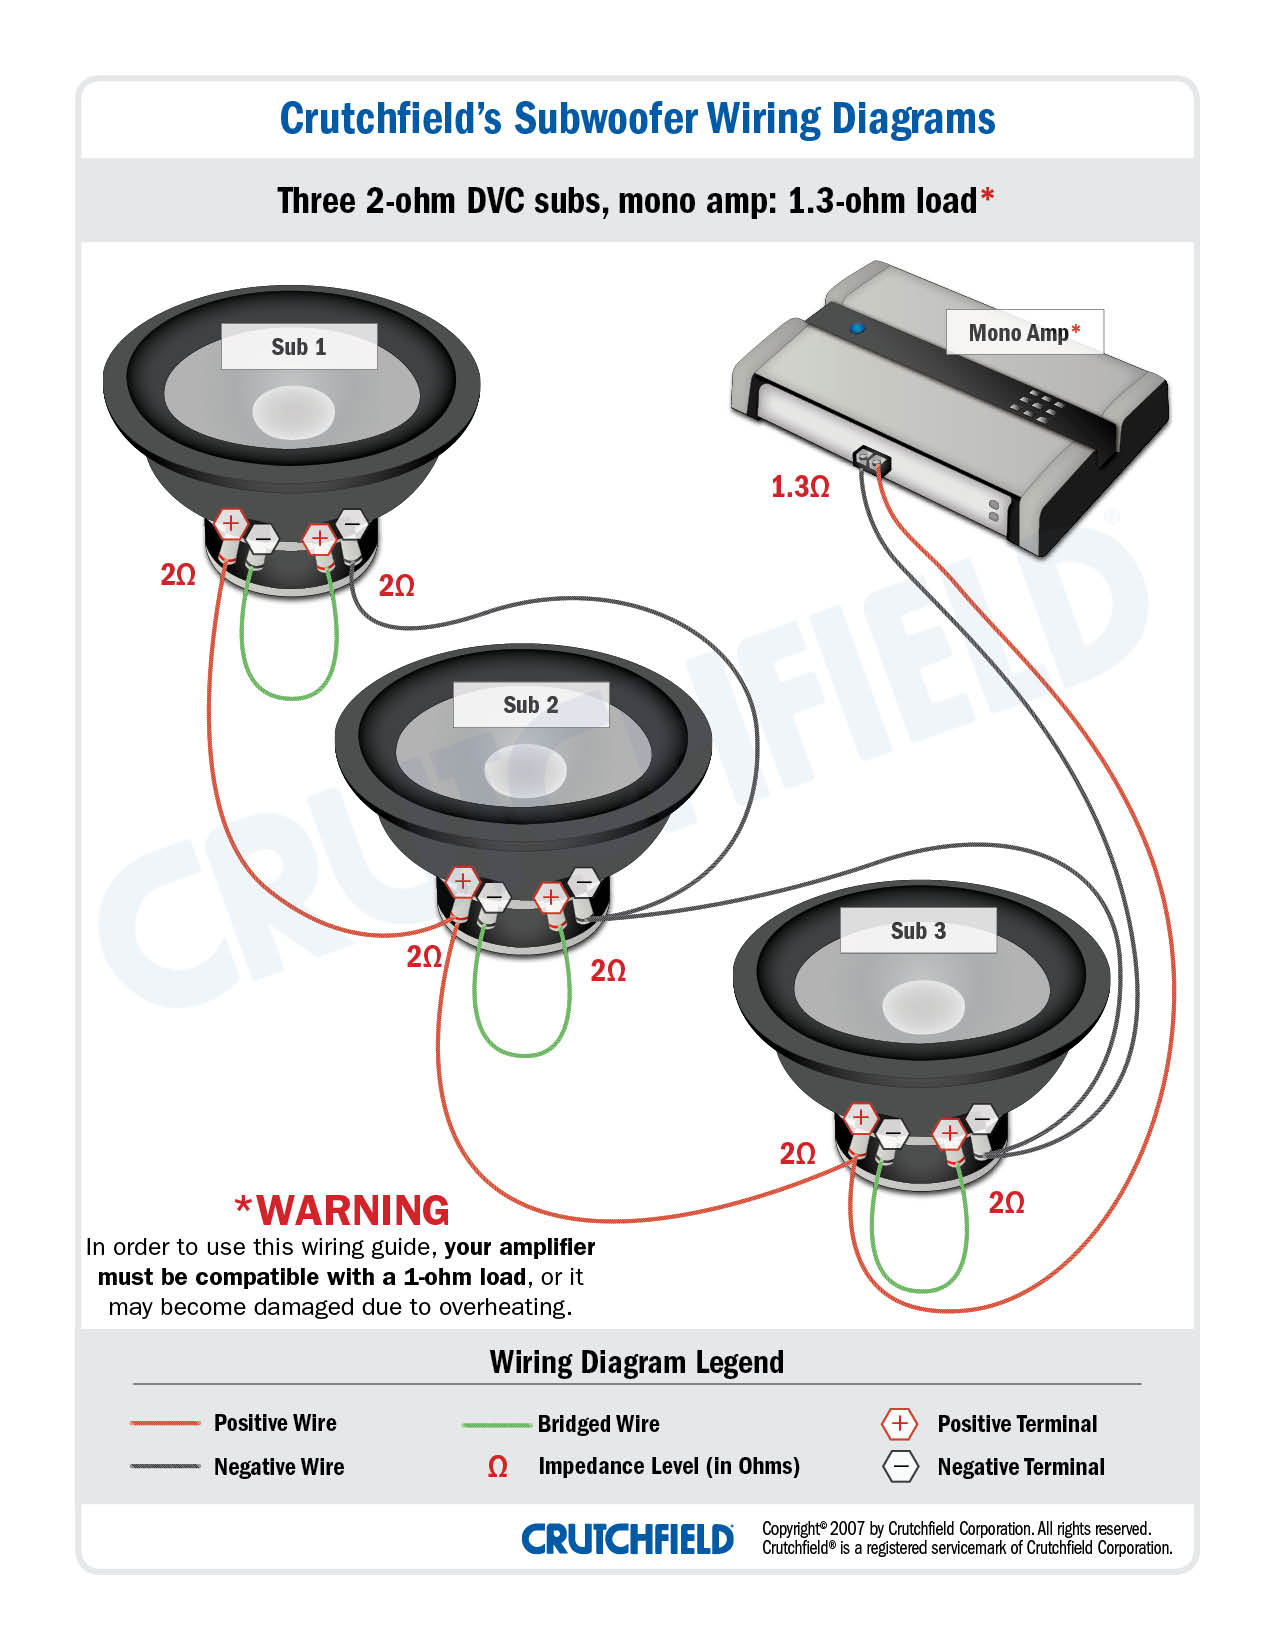 3 DVC 2 ohm mono low imp wiring diagram jl audio 5 channel amp readingrat net jl audio speaker wiring diagram at fashall.co